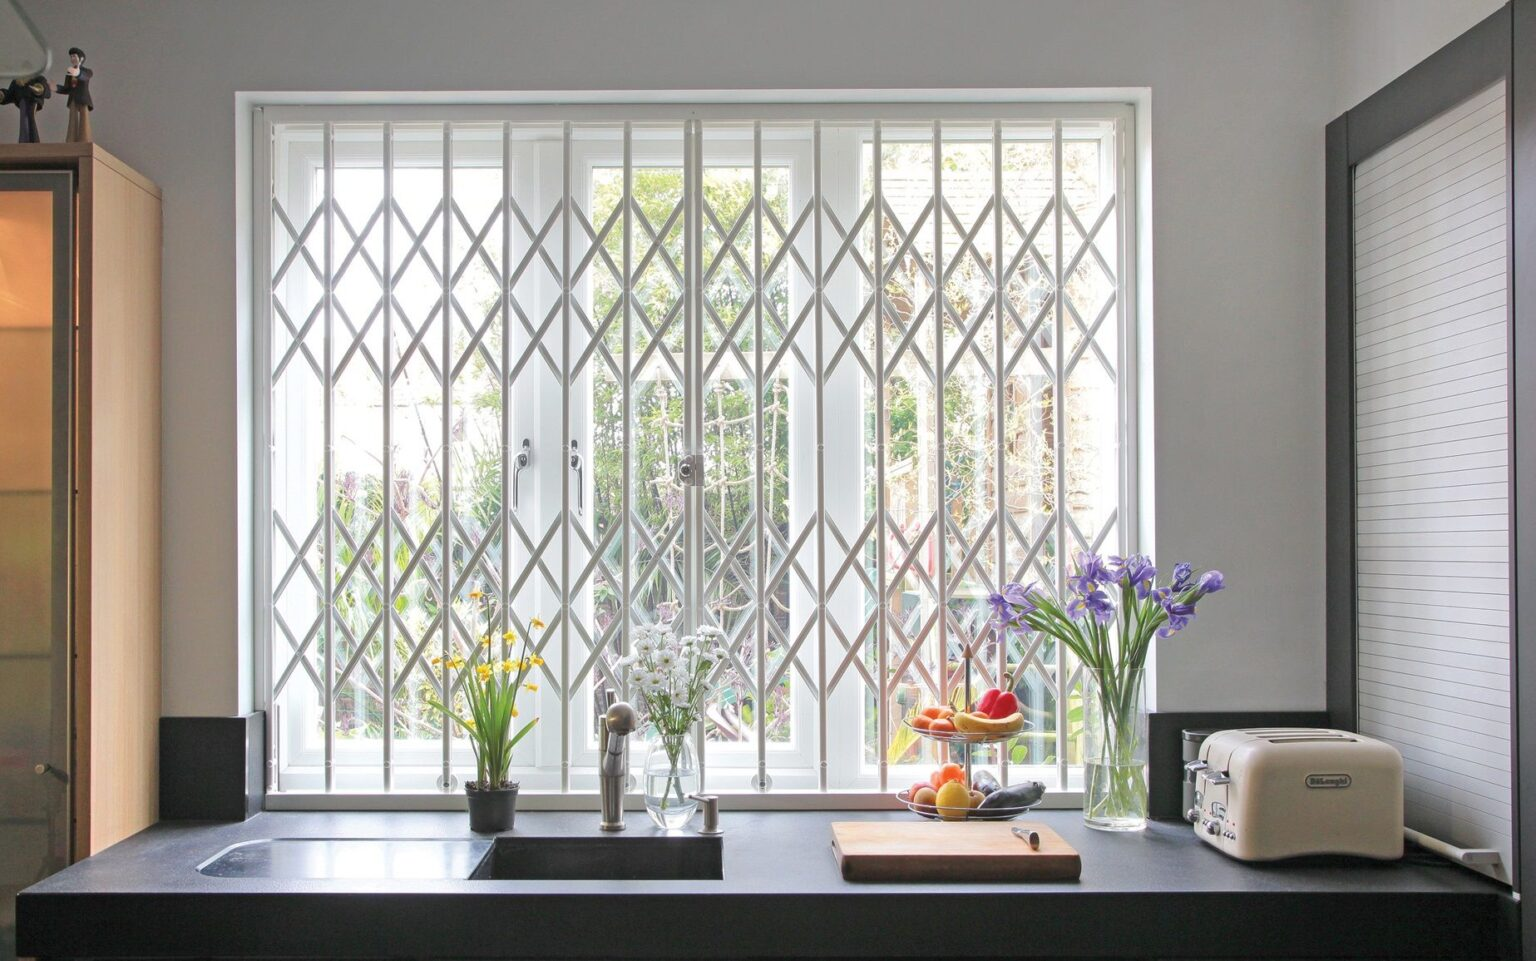 Security Grilles: Why Are These Considered To Create a Secure Space?